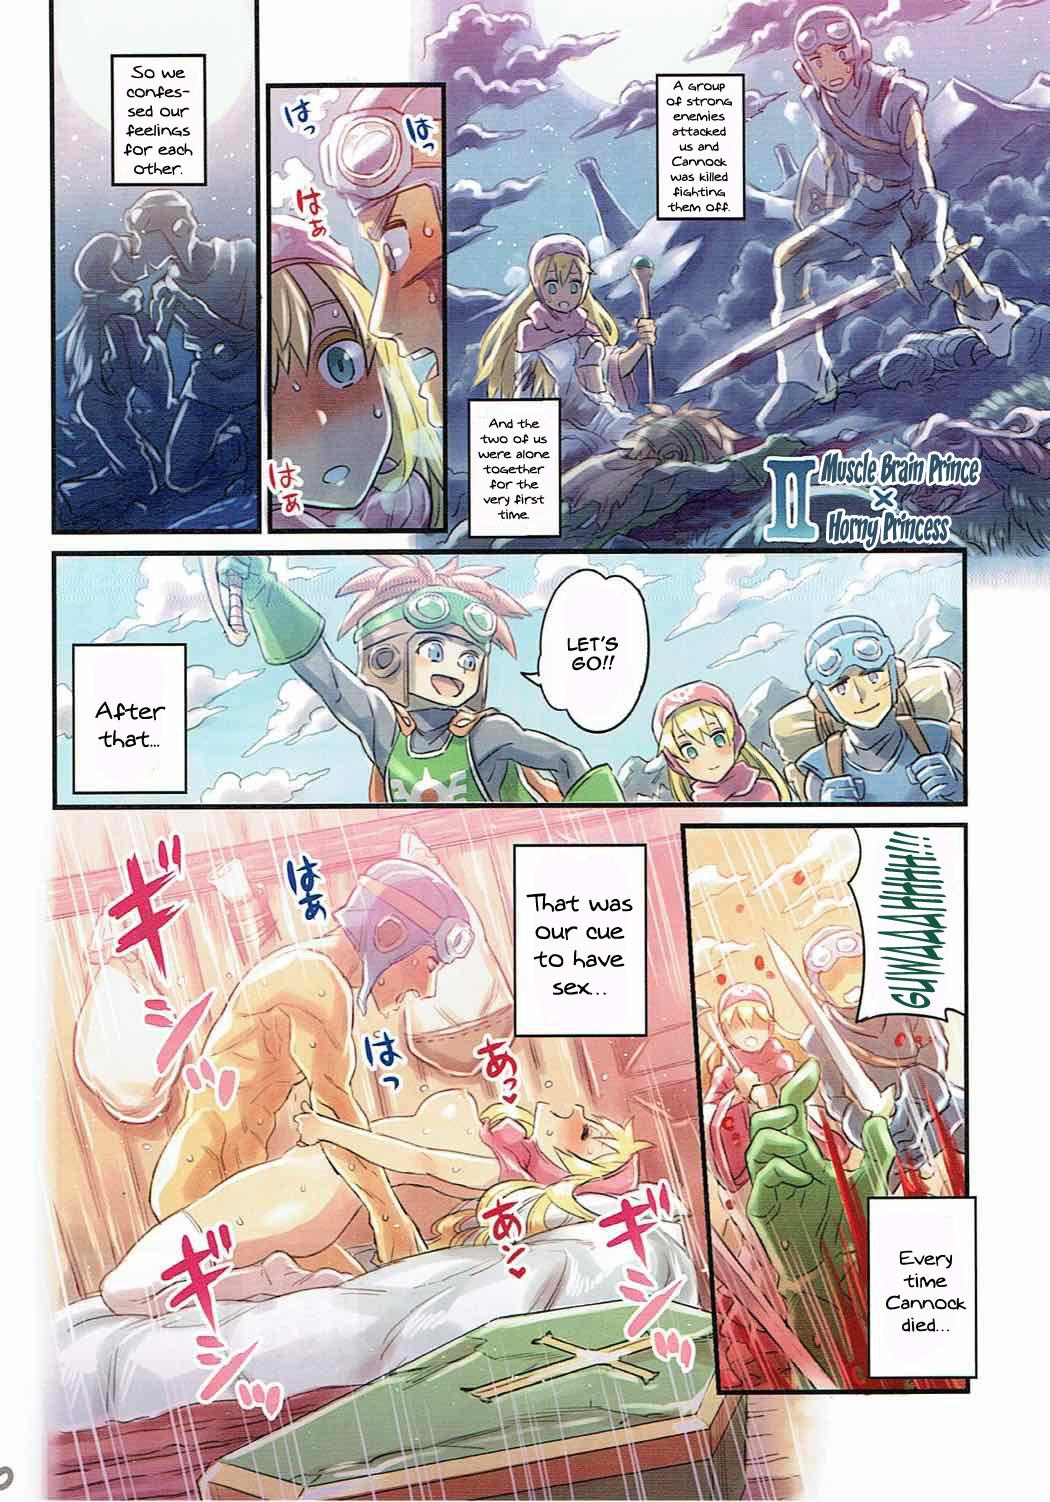 (C90) [Mimoneland (Mimonel)] Nakama to Issen Koechau Hon ~DQ Hen 2~ | A Book About Crossing The Line With Companions ~DQ Edition~ 2 (Dragon Quest) [English] {Doujins.com} 8